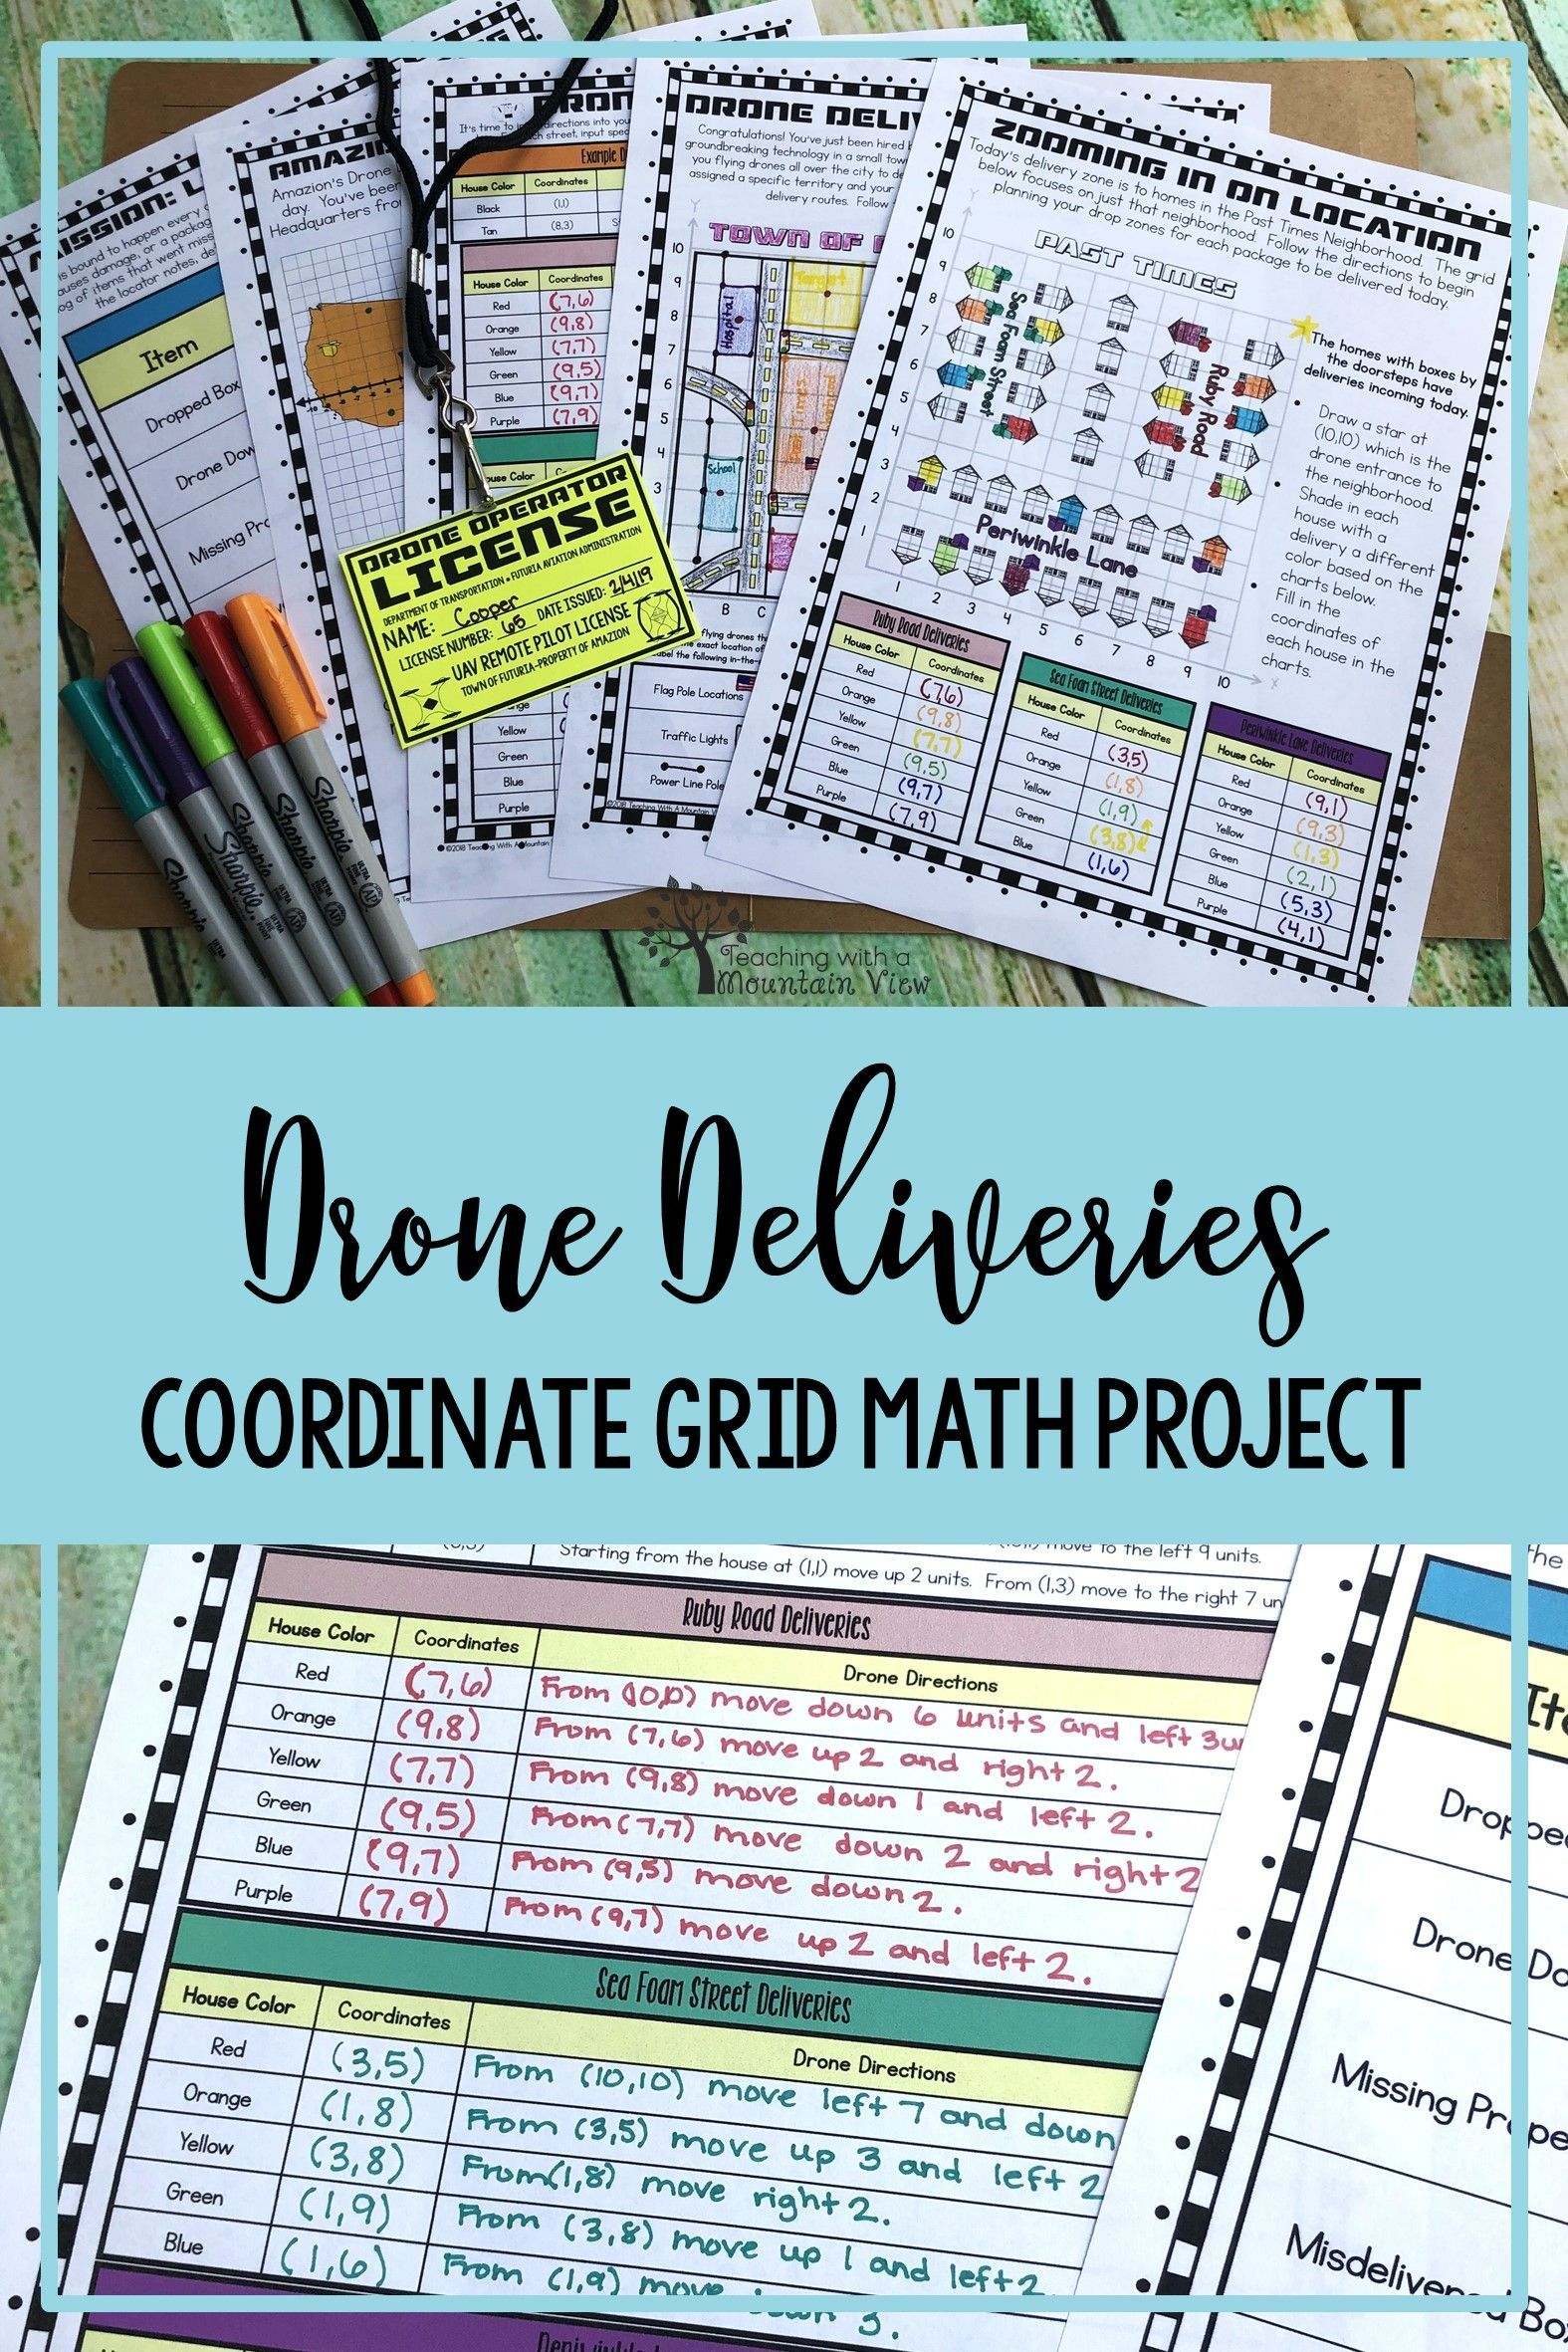 Coordinate Grid Math Project